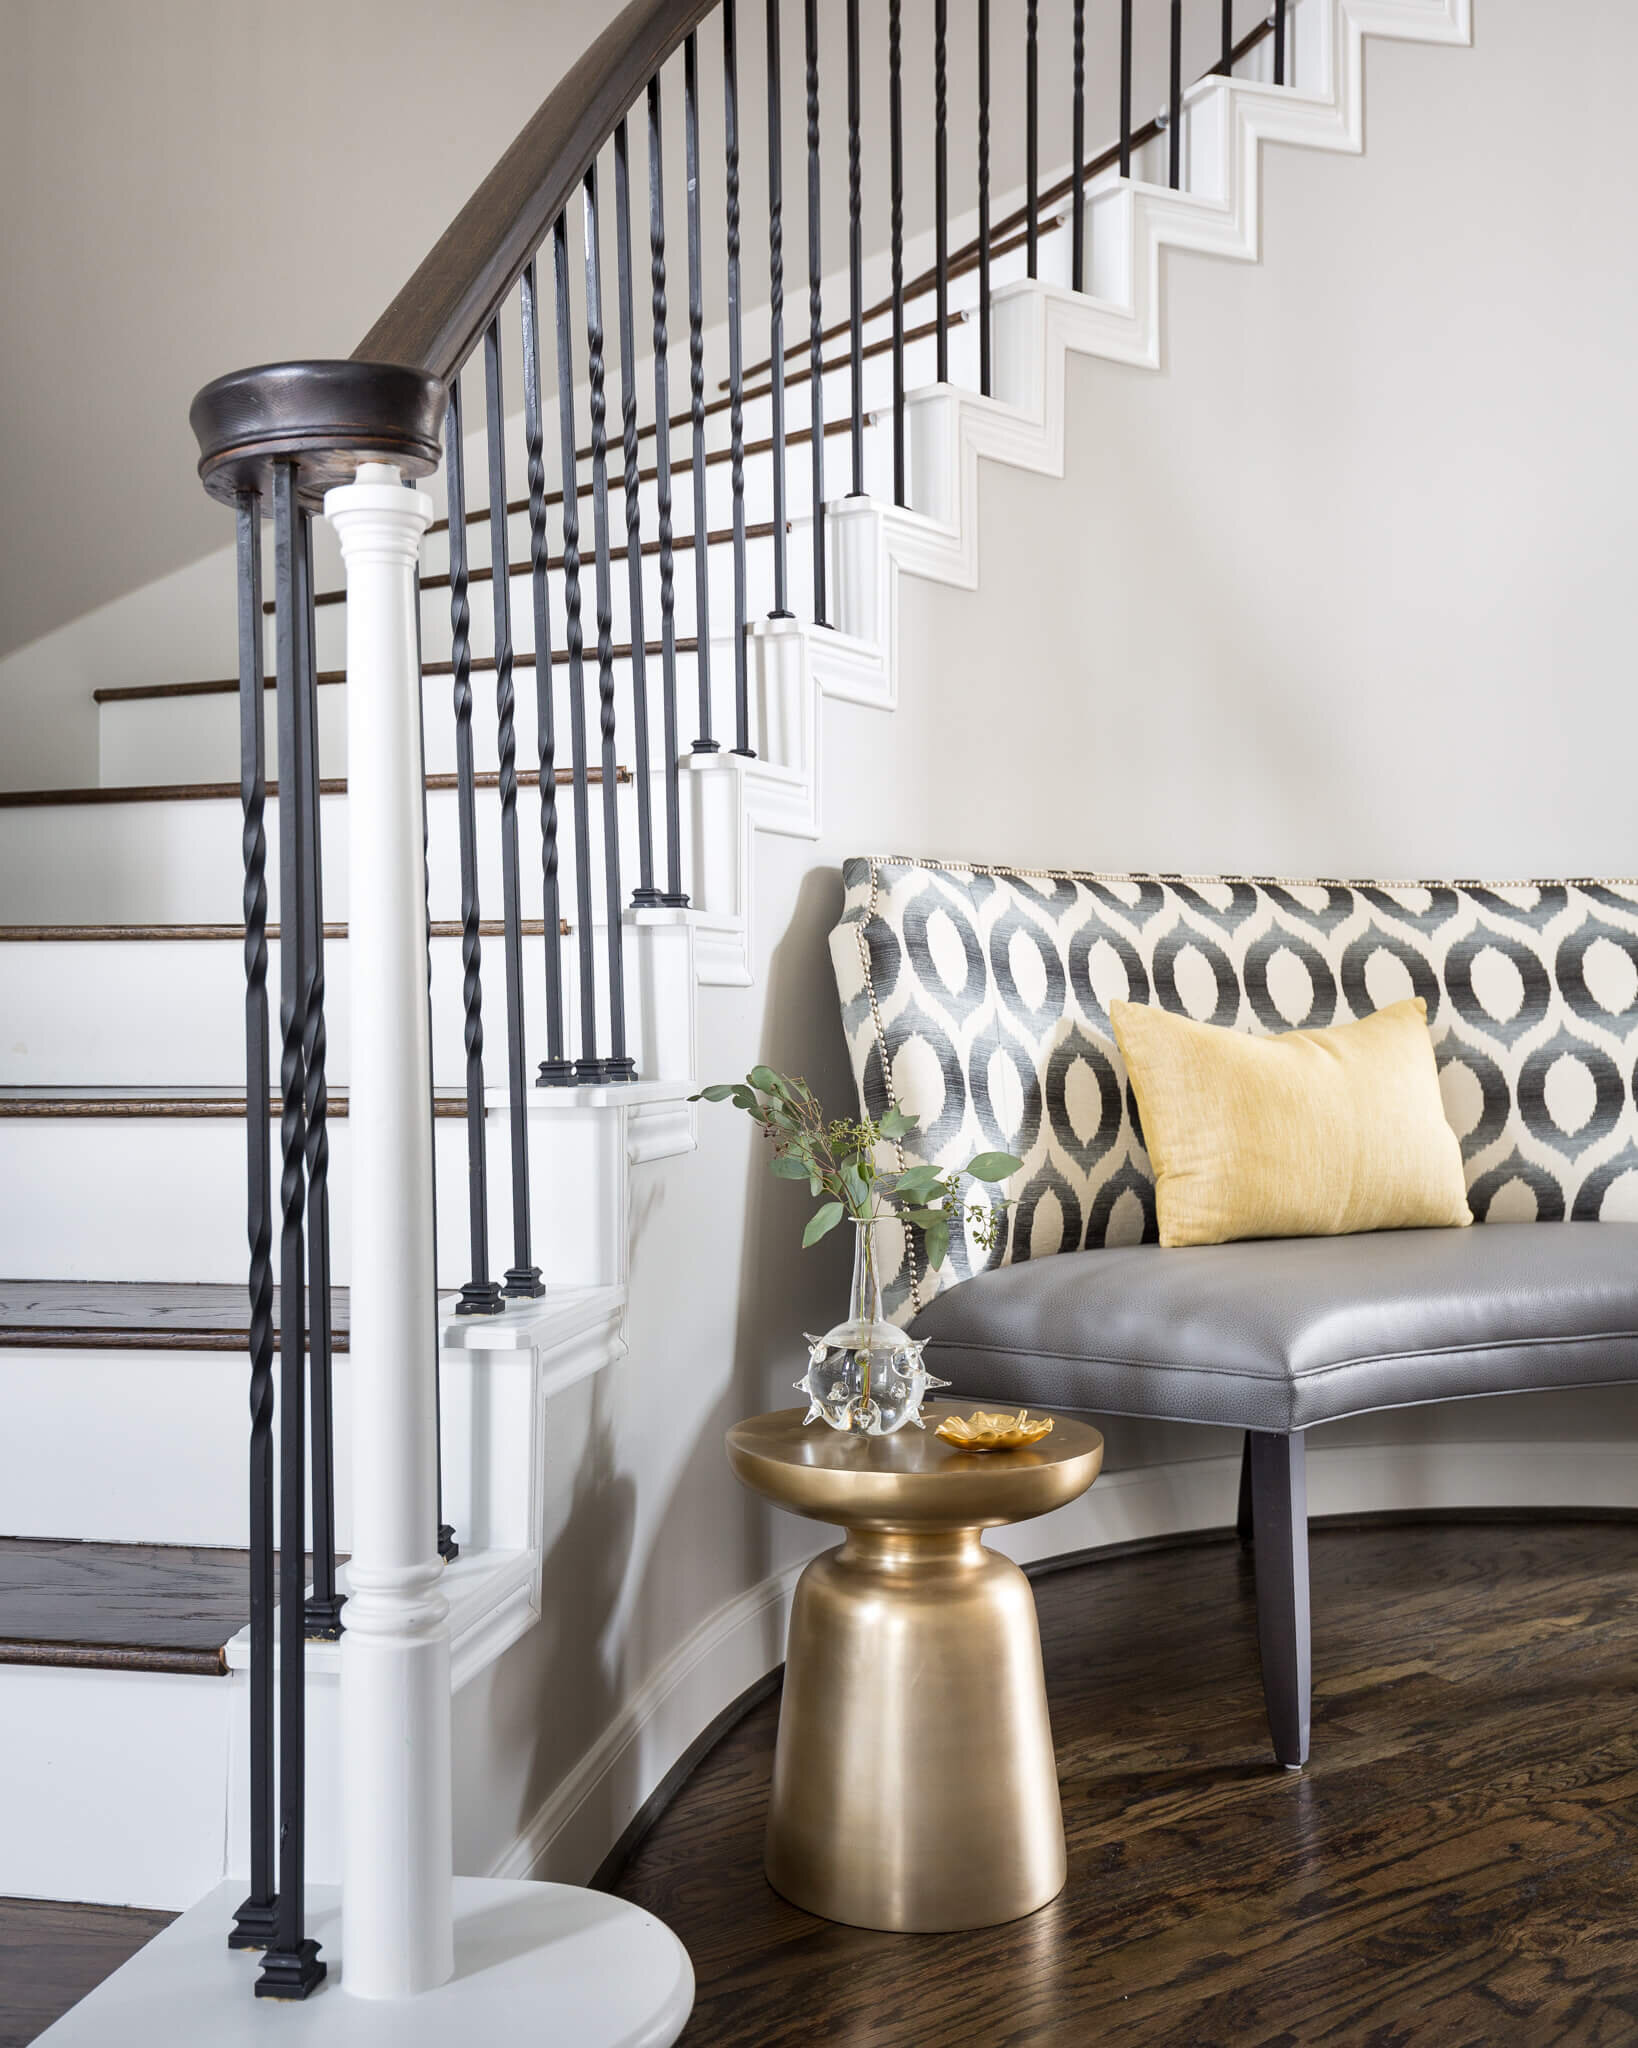 Brass side table in front entry hall of remodel project. | Carla Aston, Designer | Colleen Scott, Photographer | #brasshomedecor #brasstable #foyer #stair #curvedstair